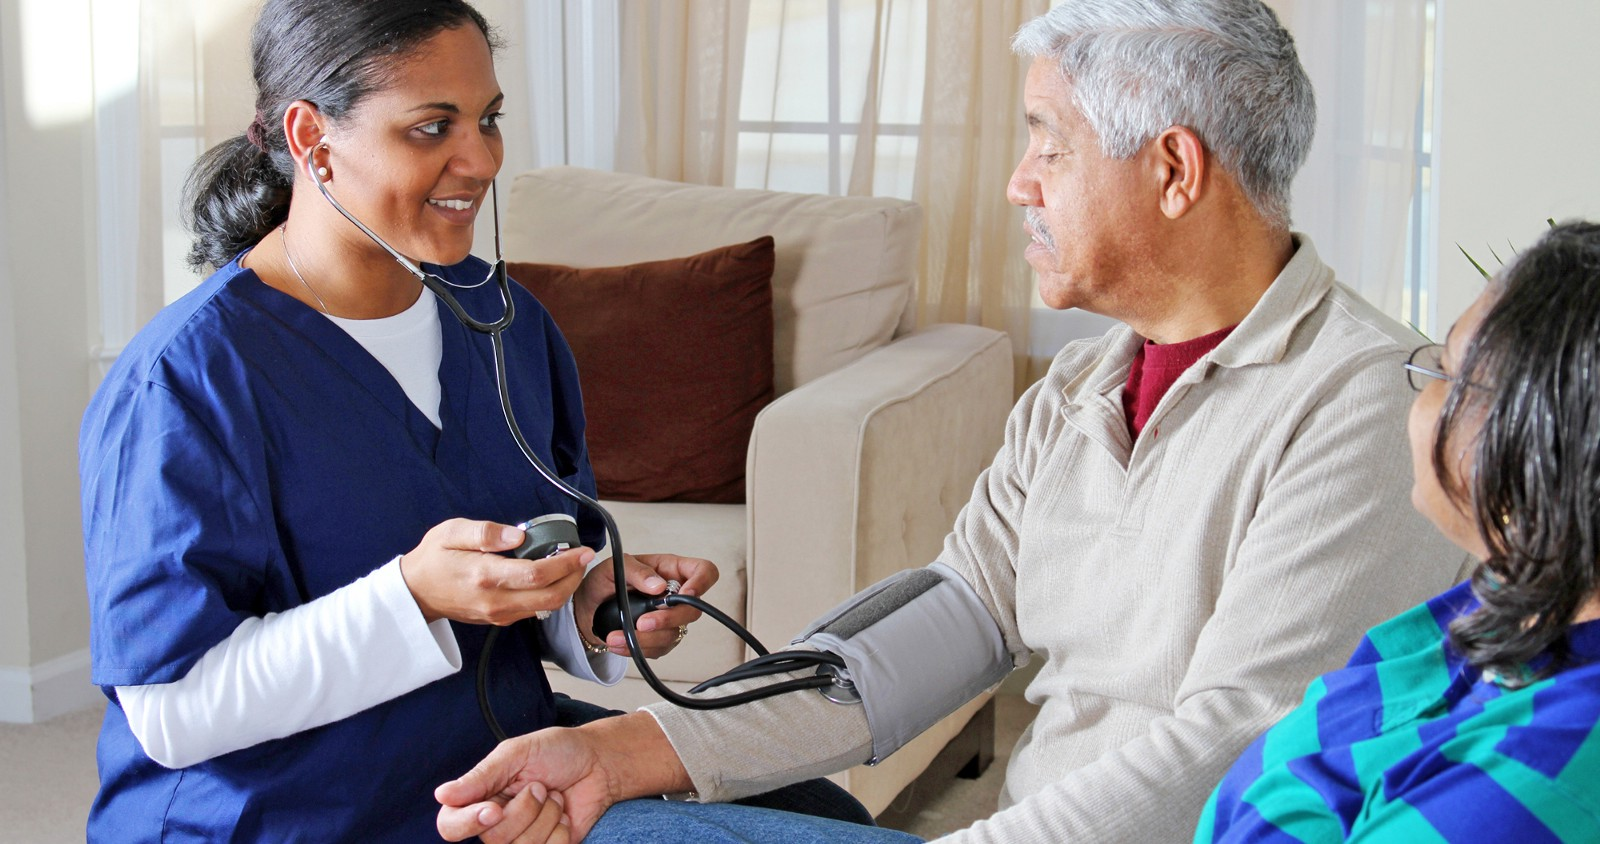 Compassionate Home Health Care Services For Mercer County Seniors